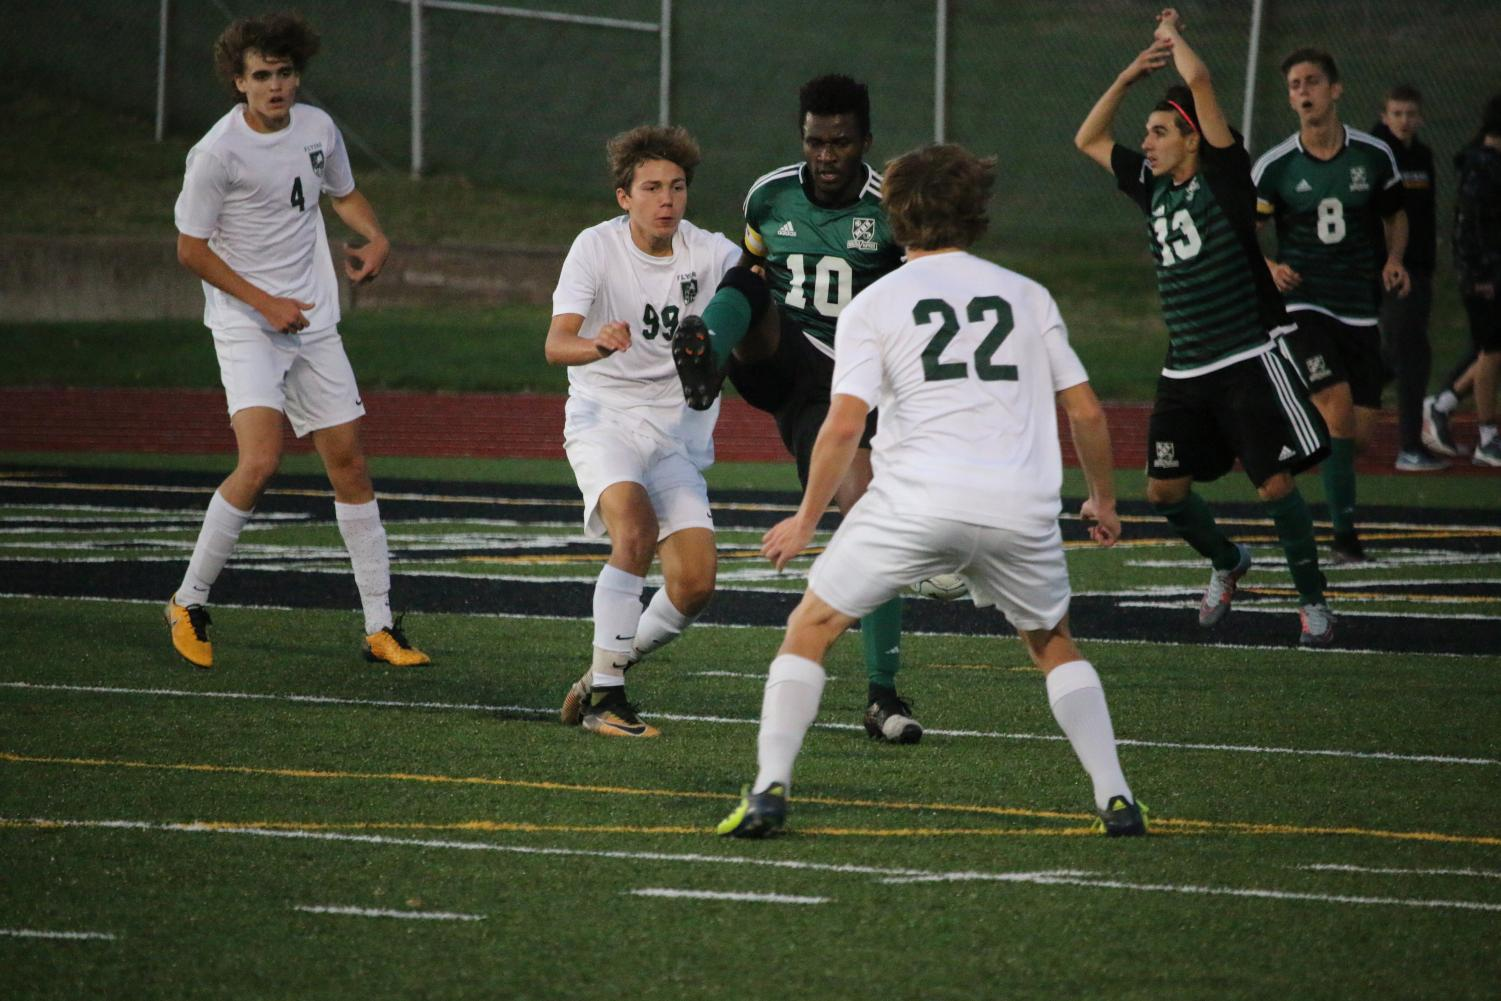 Thomas Kleinbach (12, #4), Nick Merlo (9, #99), and Dan Baudendistel (11, #22) fight with Mehlville for the ball.  The boys lost to Mehlville 1-0 in the District Finals.